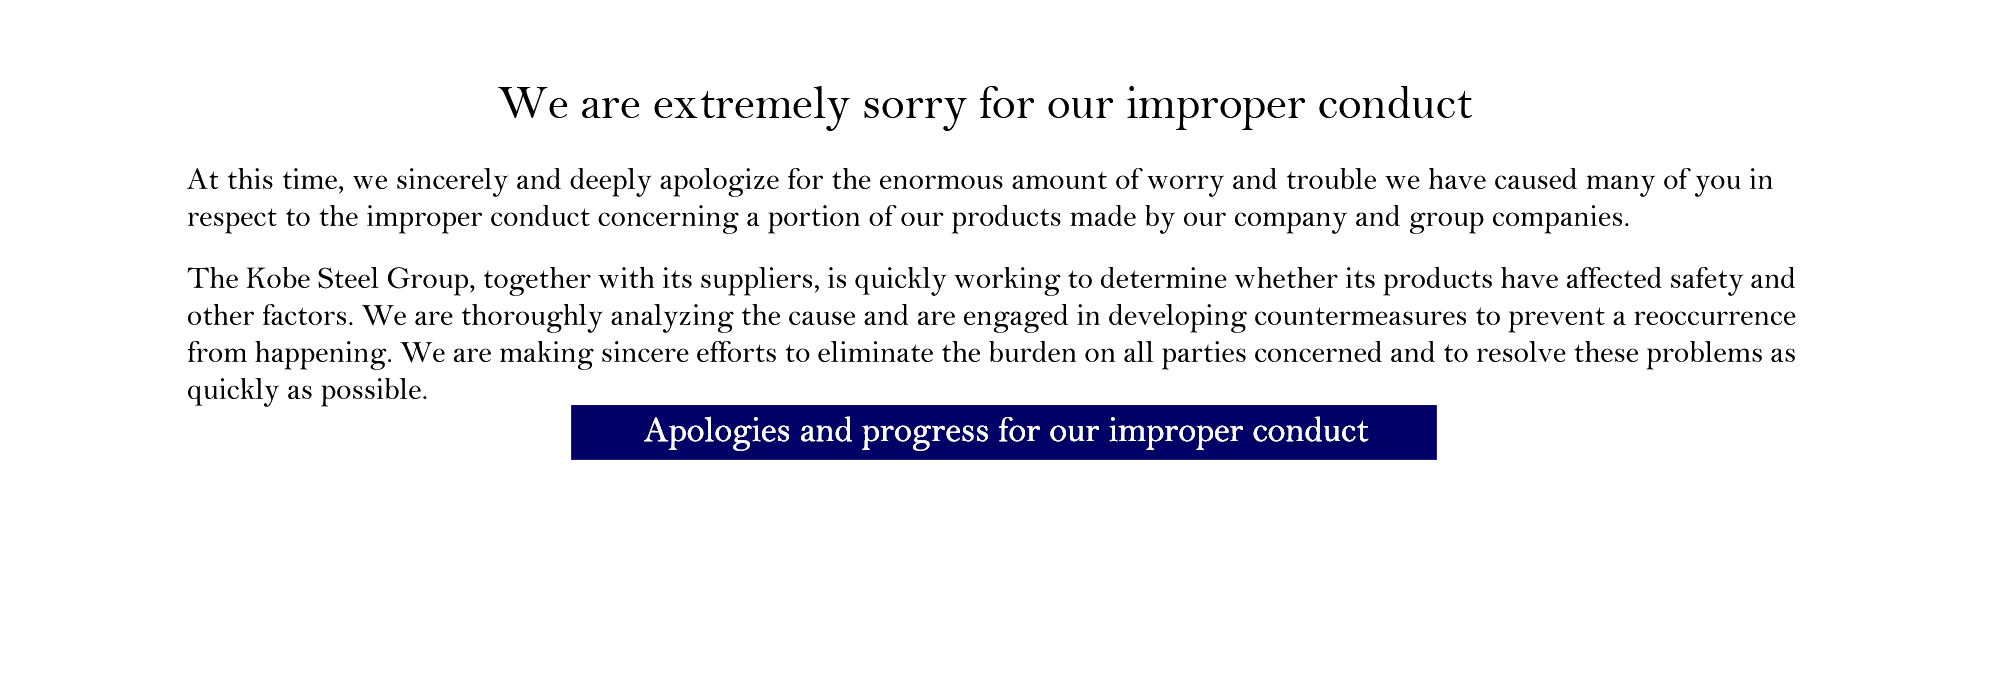 Apologies and progress for our improper conduct